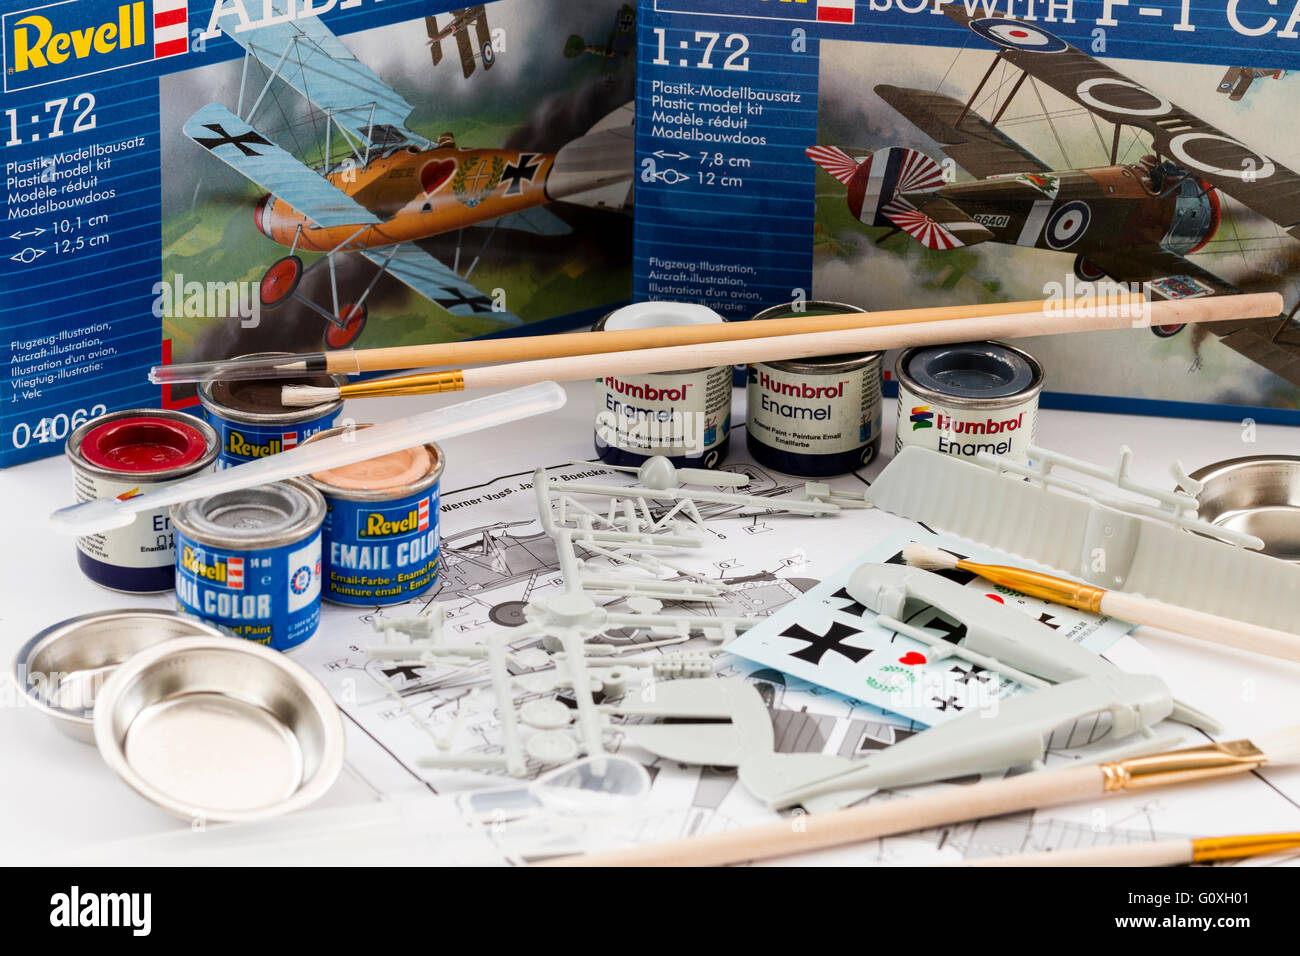 Hobby, plastic kit modelling. Background, 2 revell airplane boxes with contents of one in foreground, surrounded - Stock Image